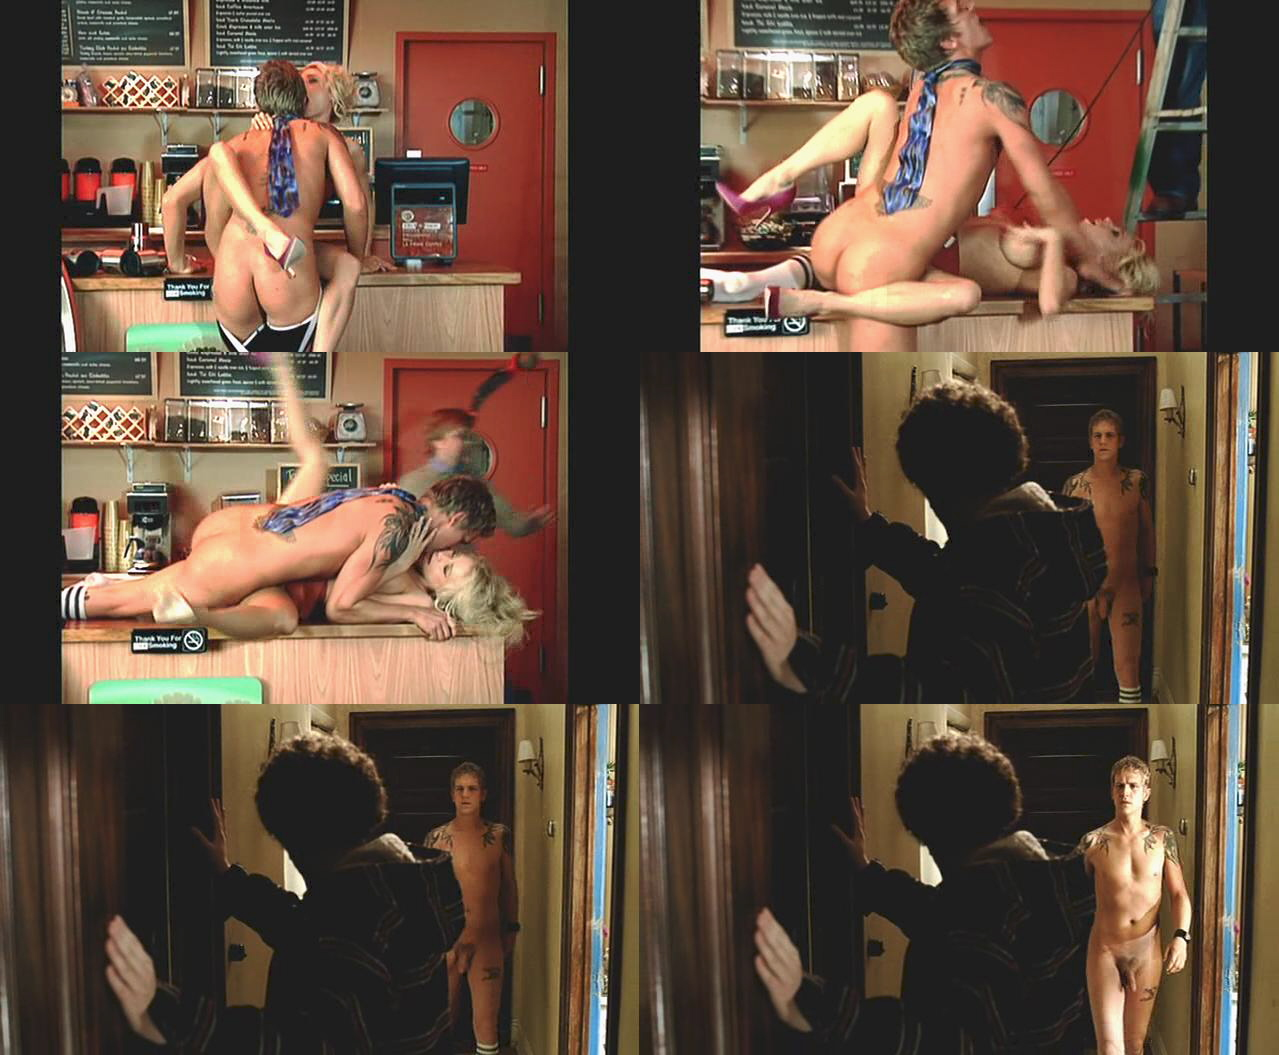 Jason priestleynude fakes cartoon scenes